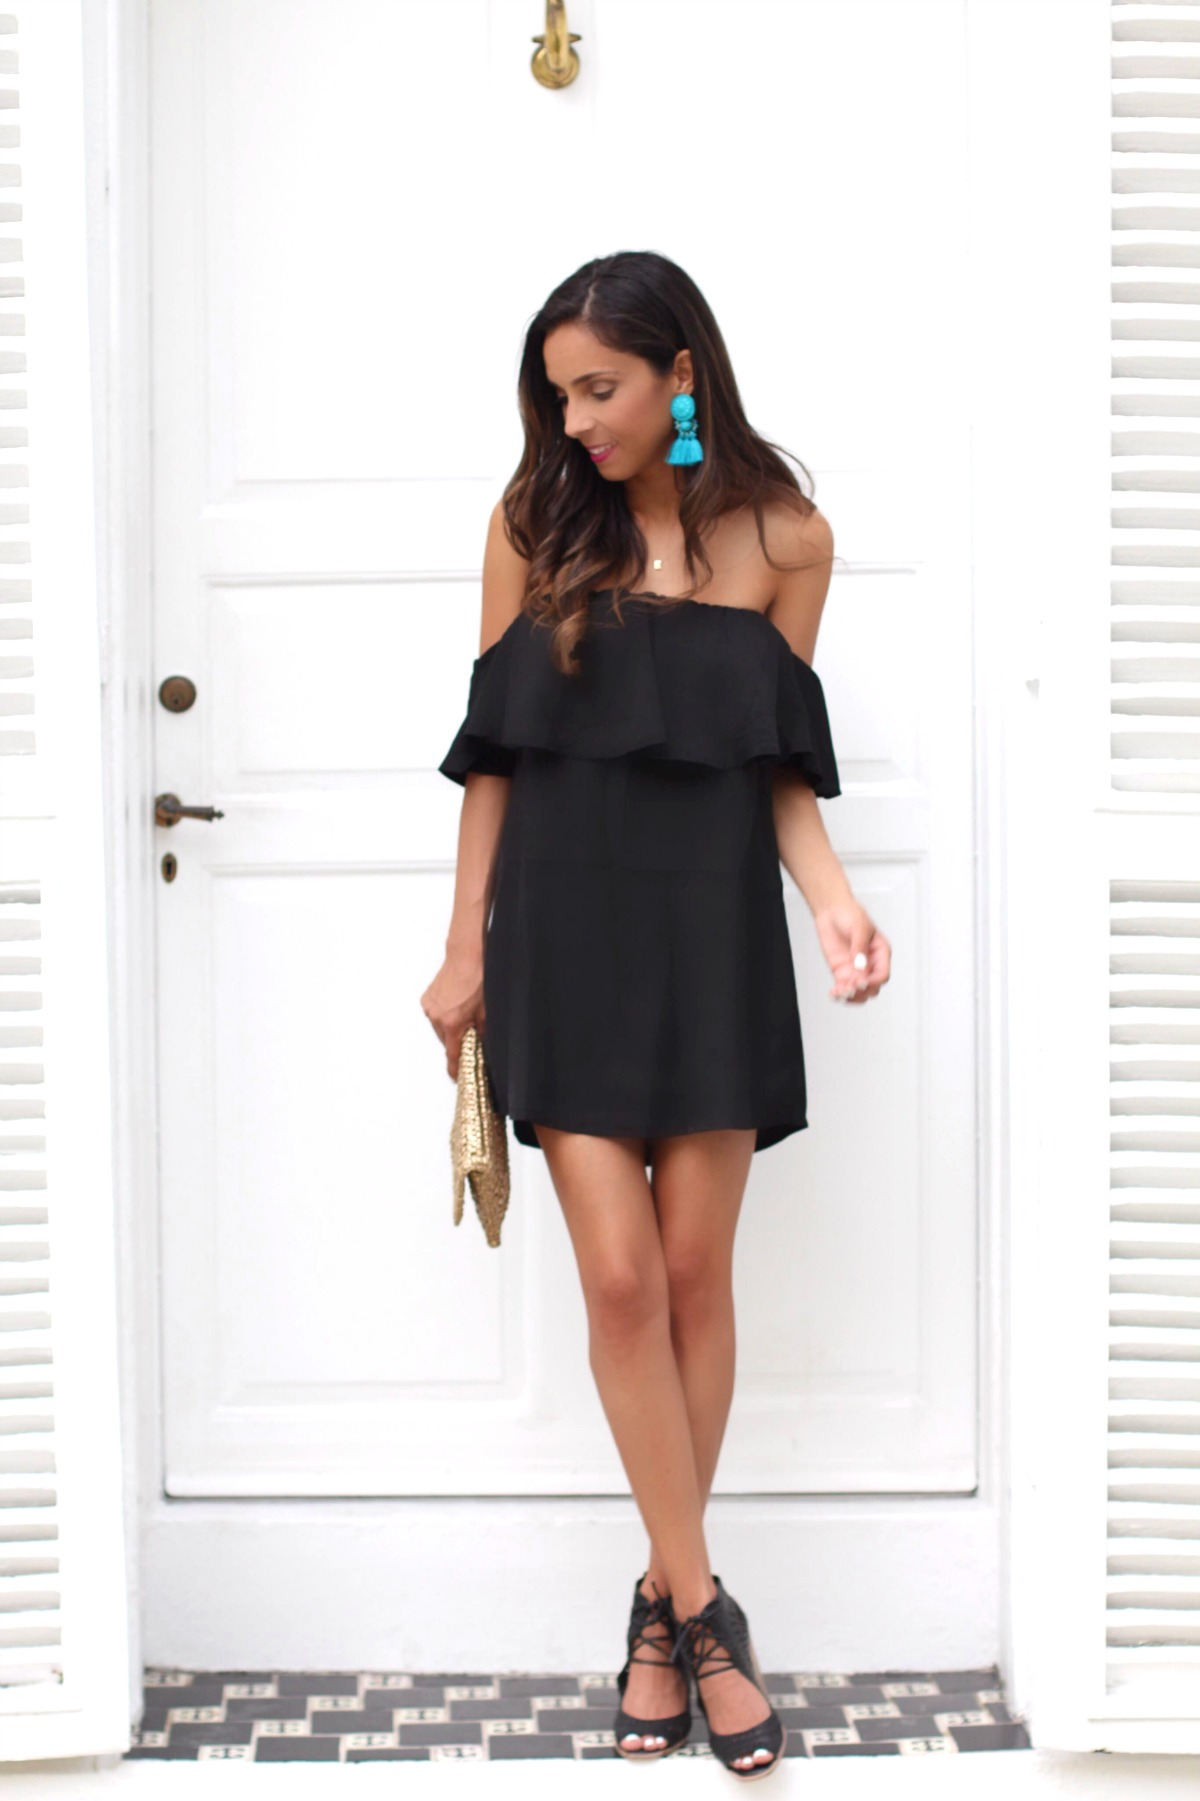 Black off the shoulder dress with turquoise accessories